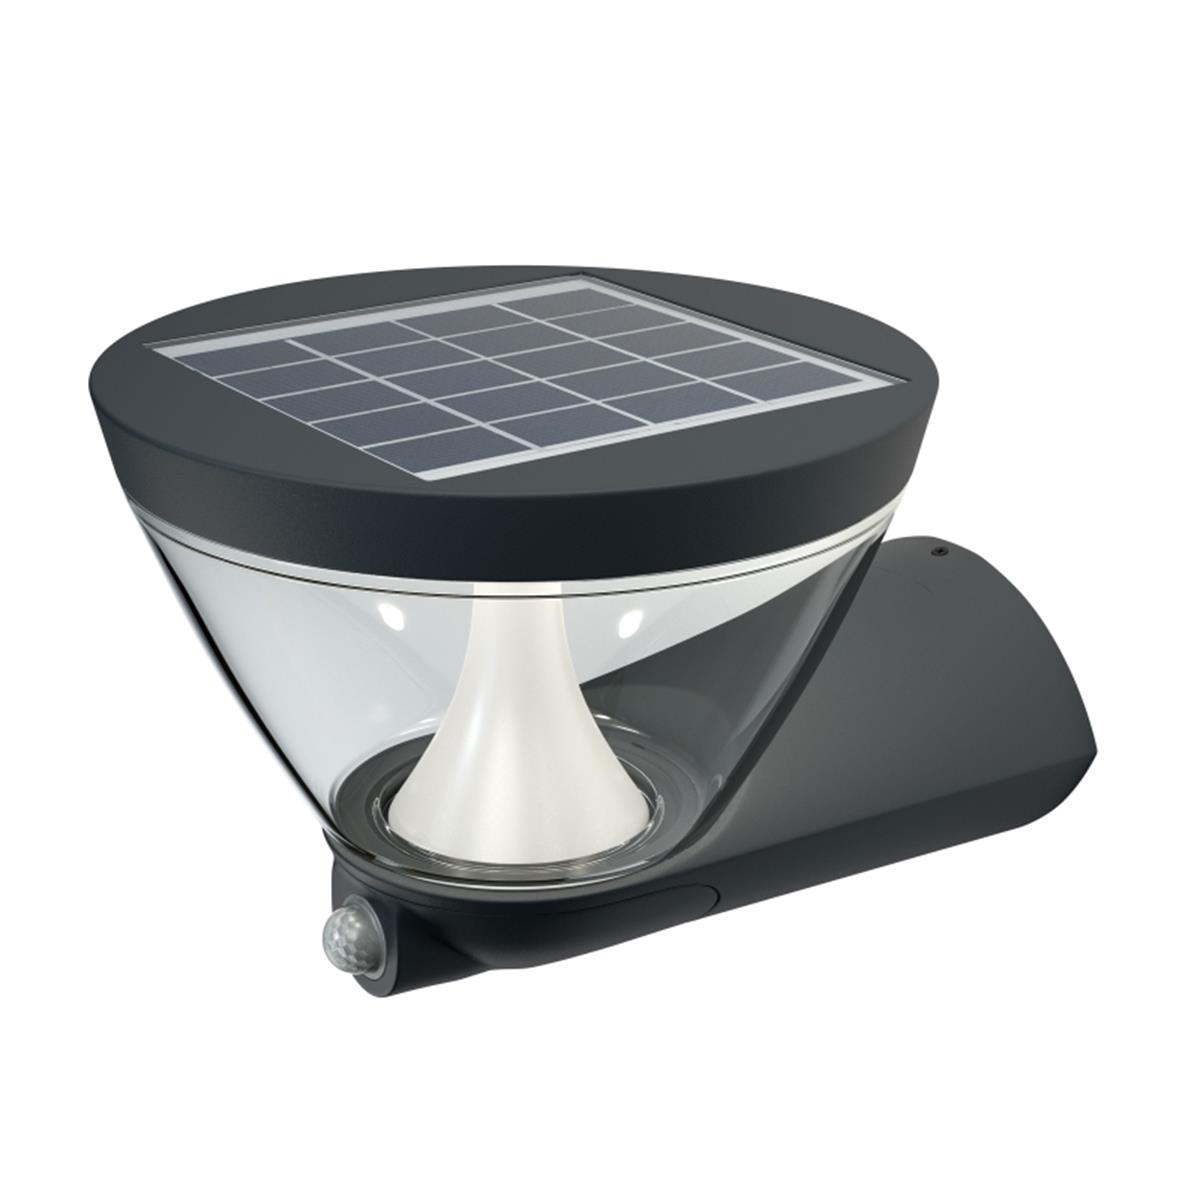 osram endura style led lantern solar sensor 5w 340lm. Black Bedroom Furniture Sets. Home Design Ideas